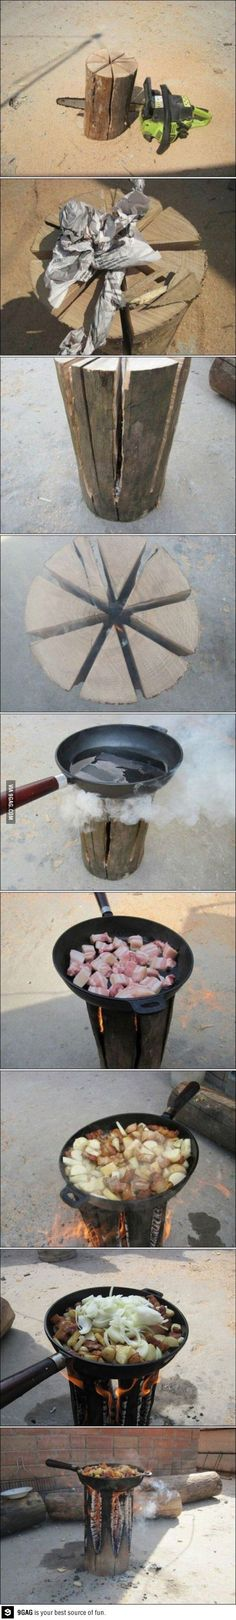 Camping stove Finnish style